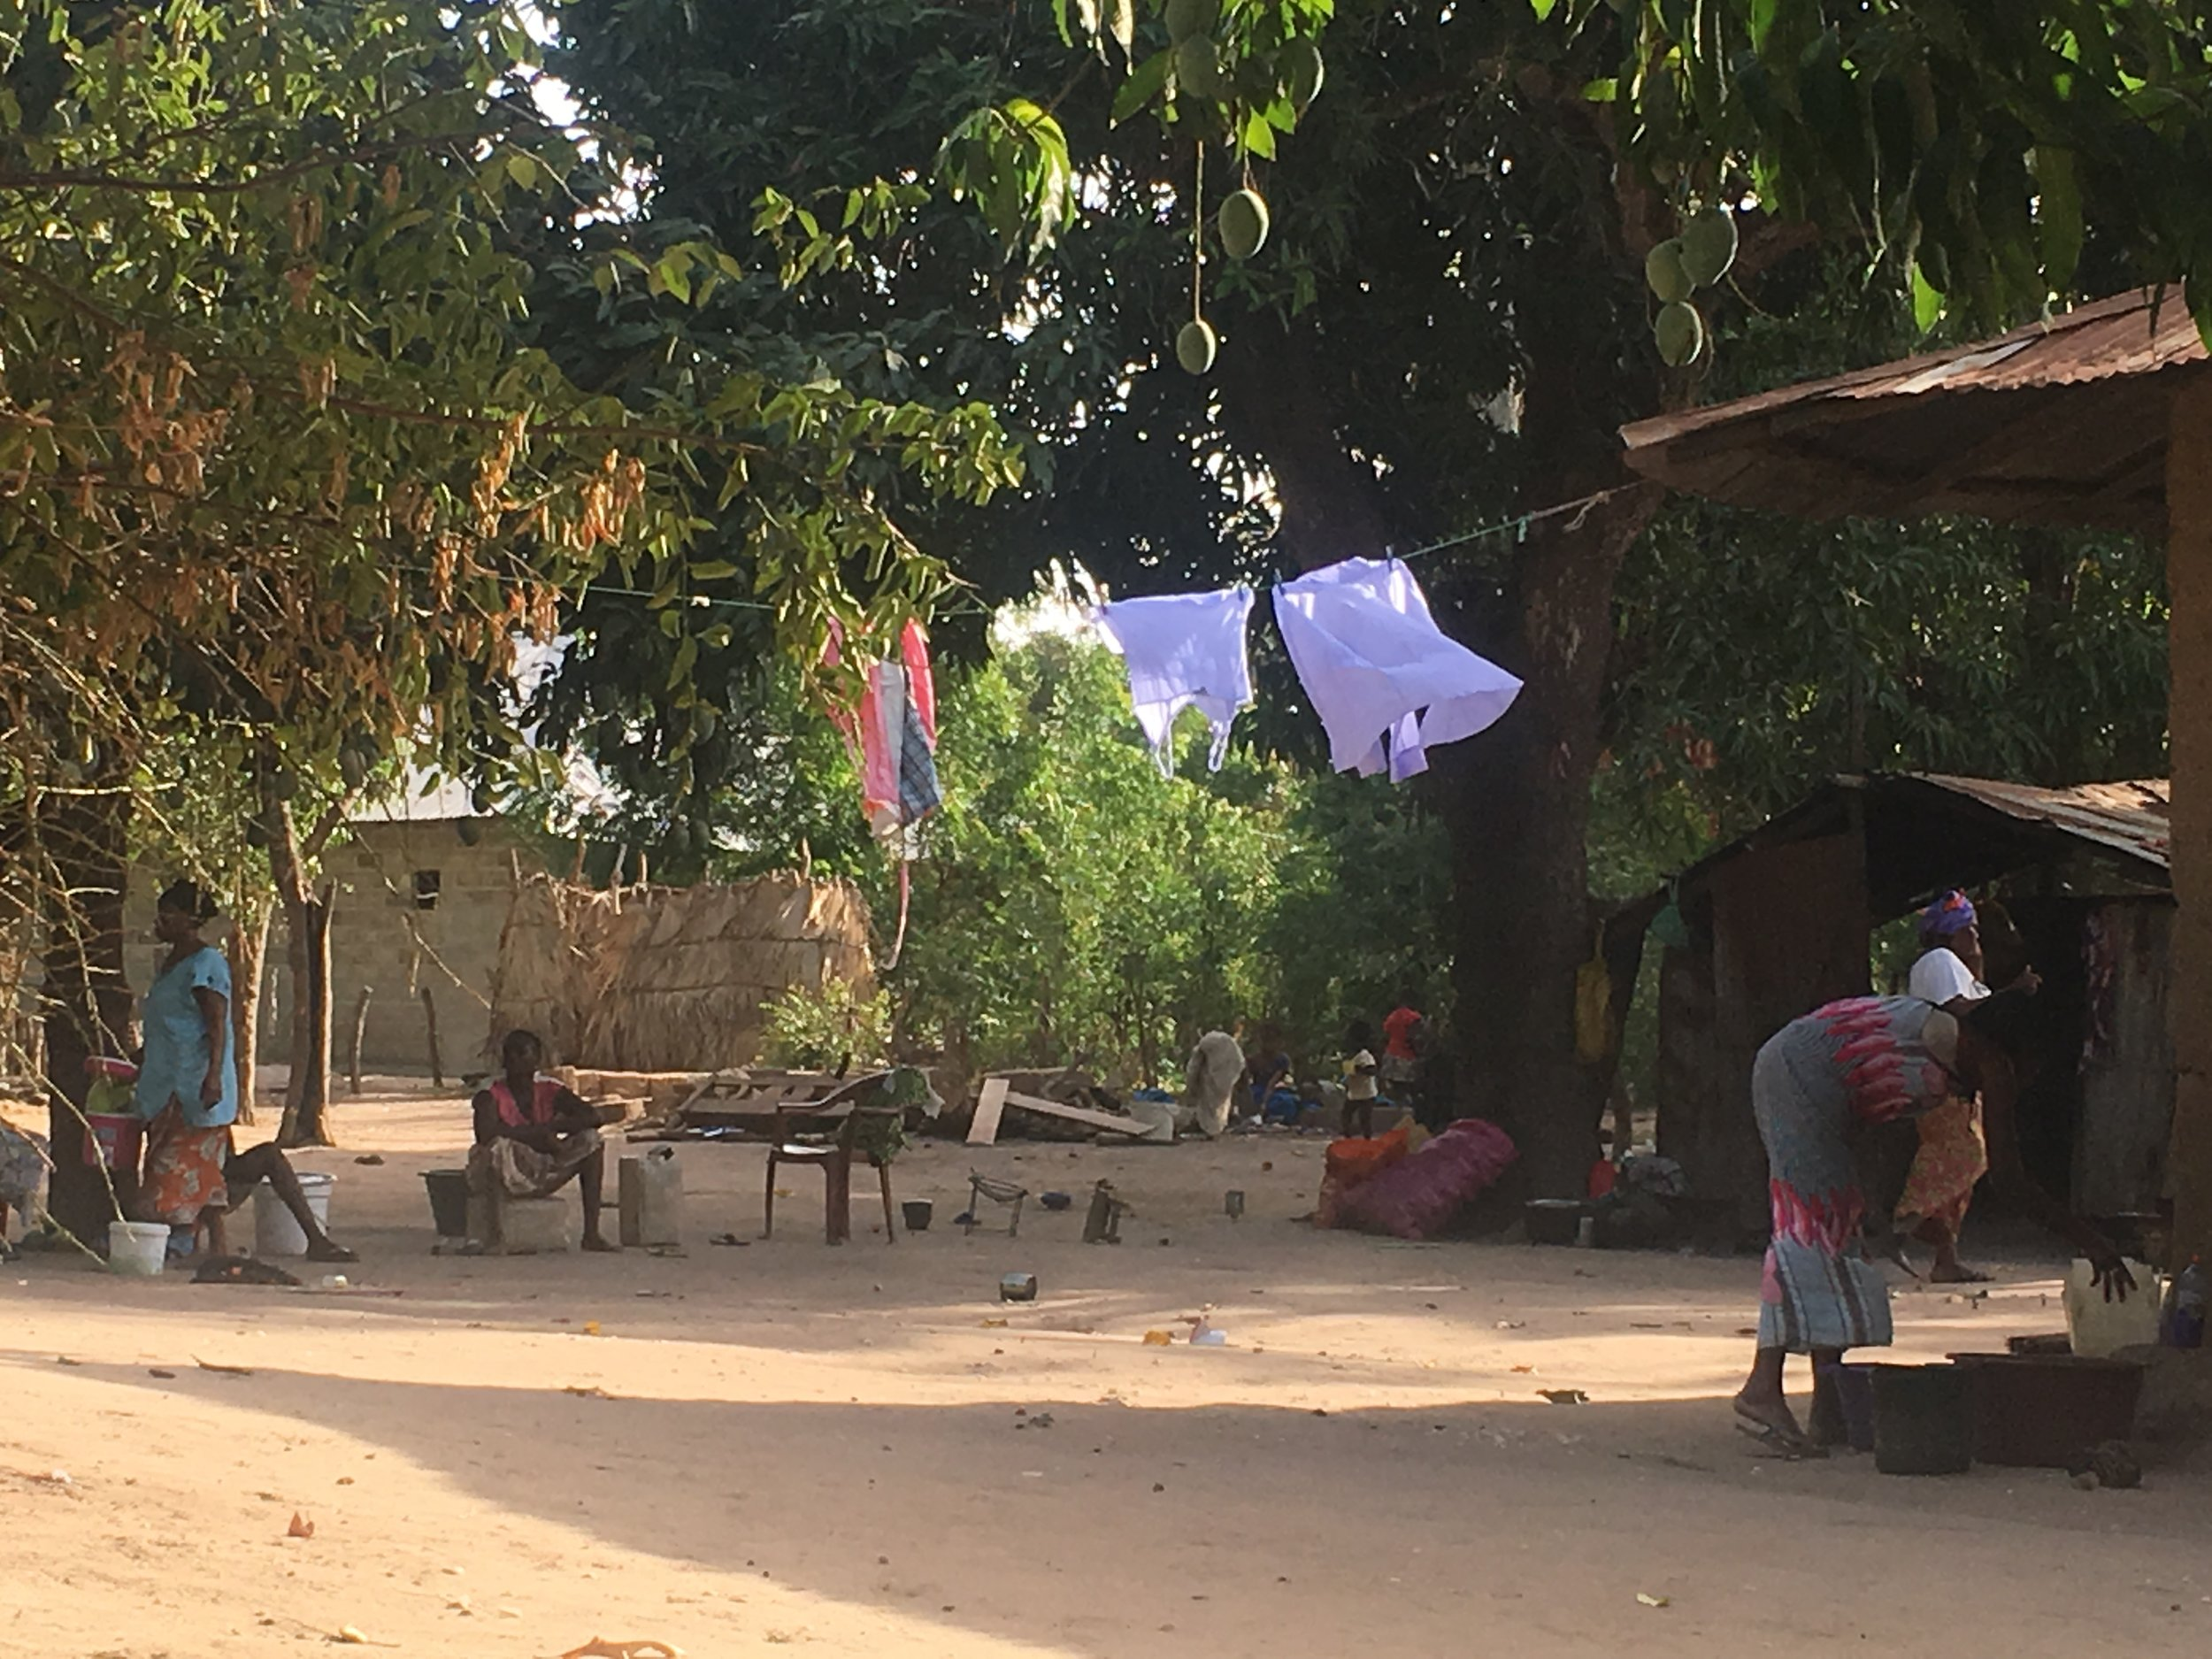 Most of daily Senegalese life takes place outside.